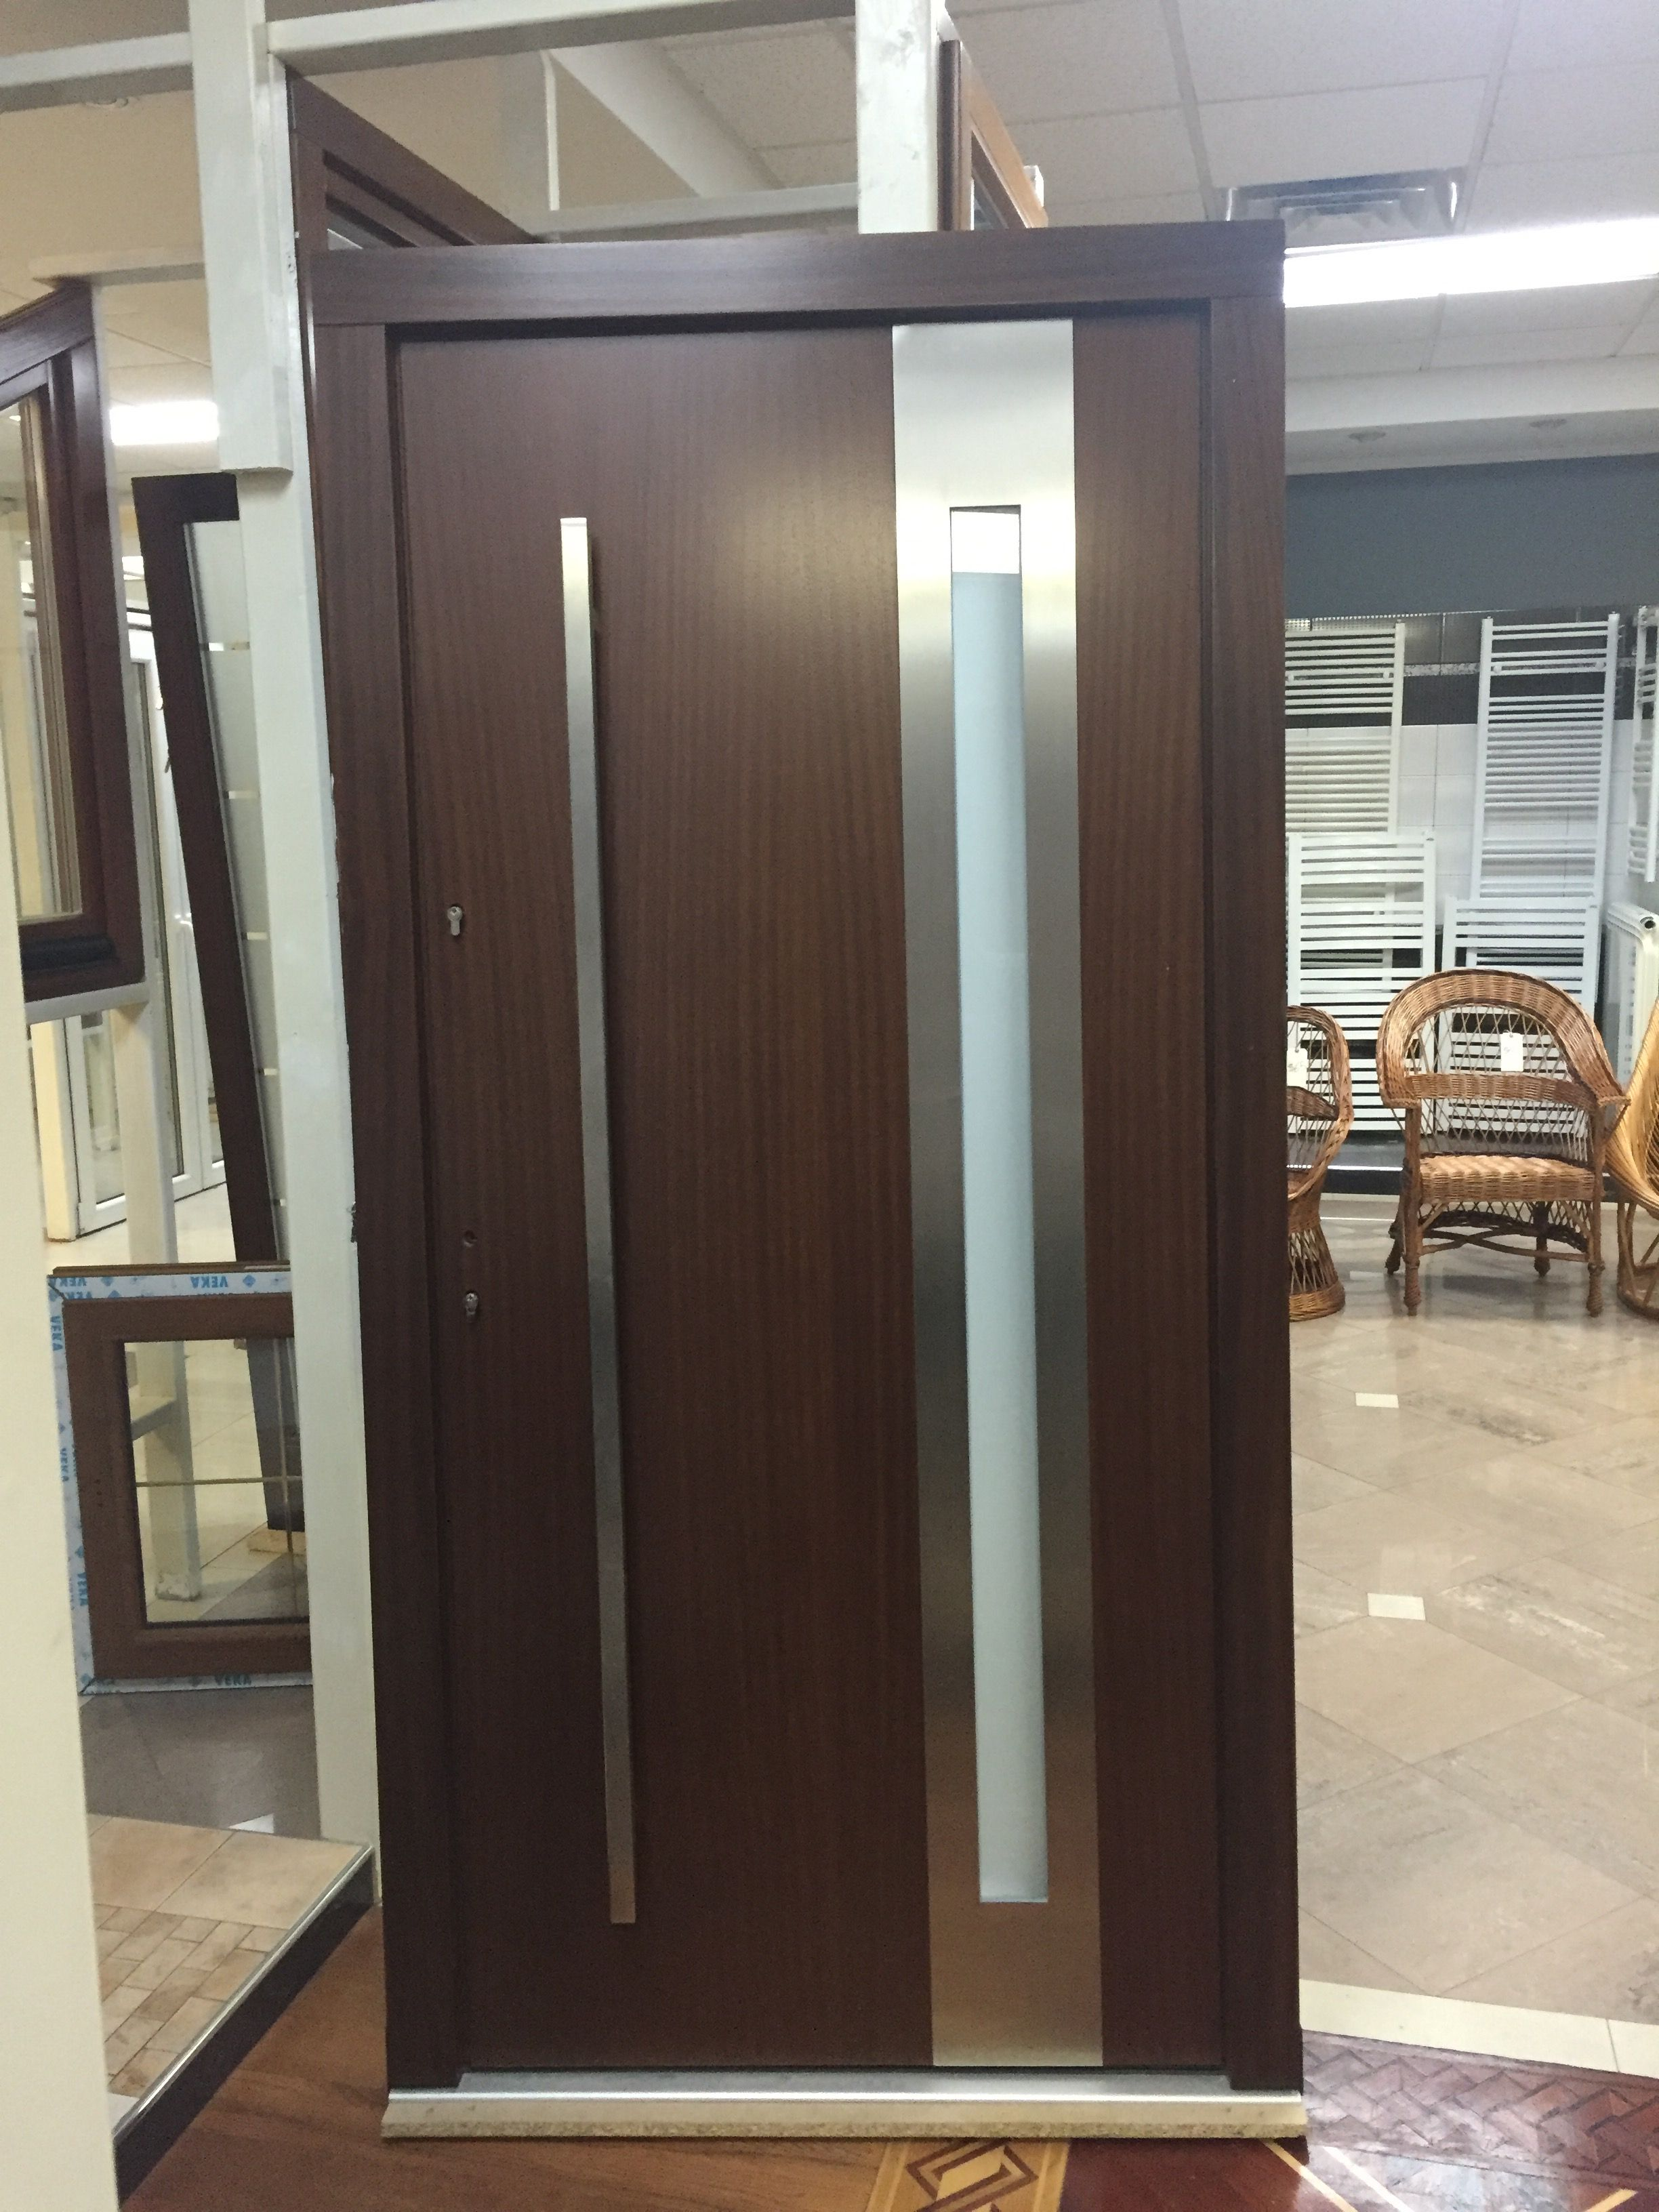 Remin exterior materials - In Stock Modern Mahogany Wood Exterior Doors For Your Home Size W 42 X